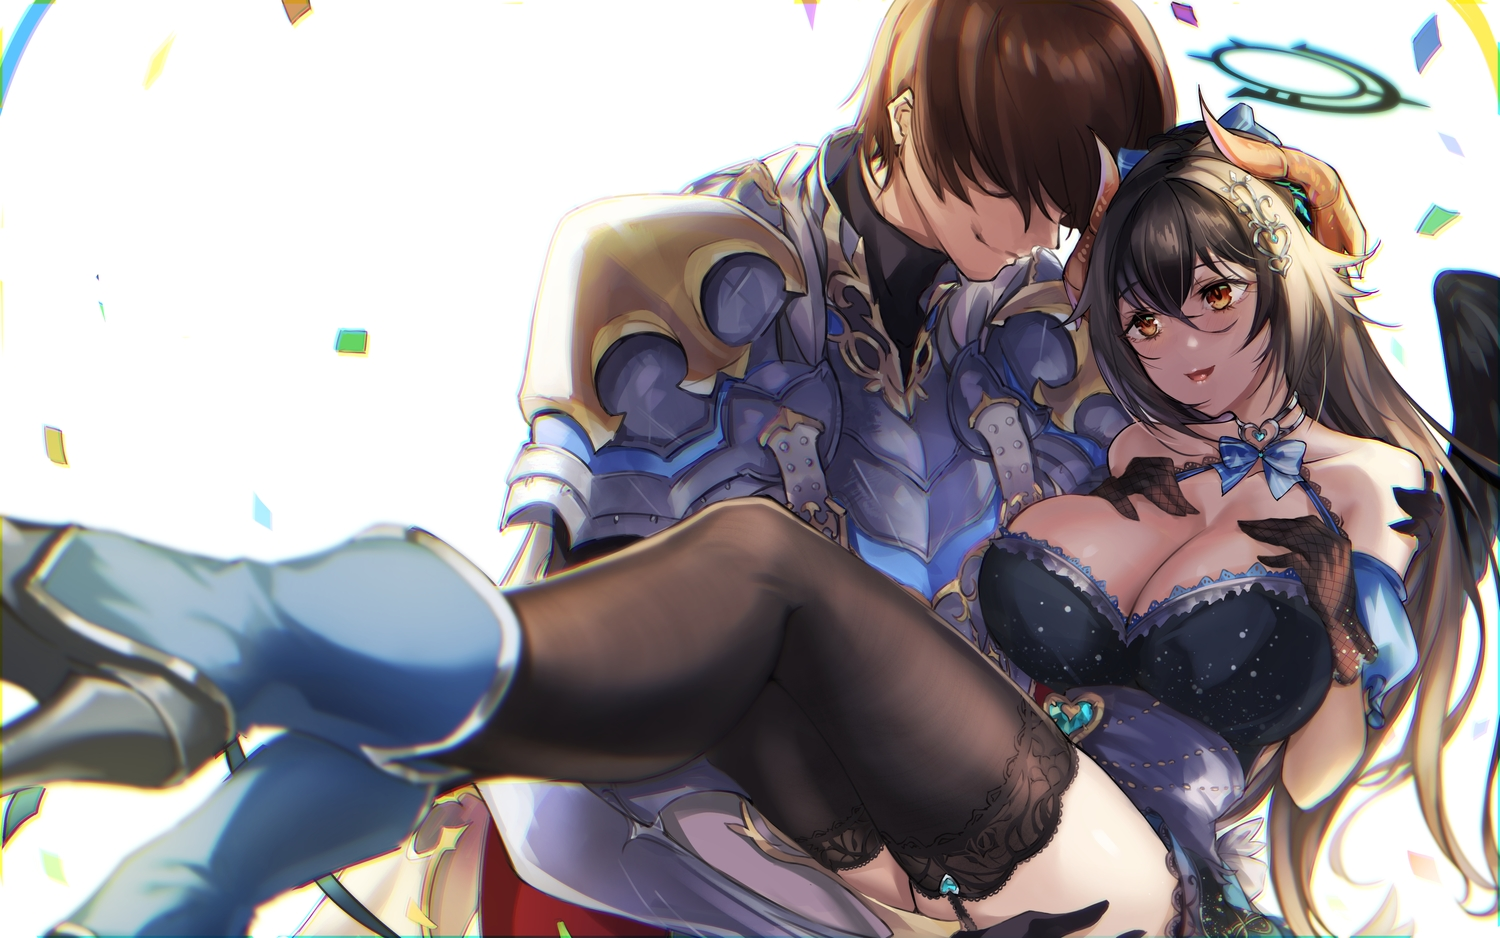 breast_hold breasts cleavage dress eichi halo long_hair male prince_(sennen_sensou_aigis) sennen_sensou_aigis short_hair sophie_(sennen_sensou_aigis) stockings wings